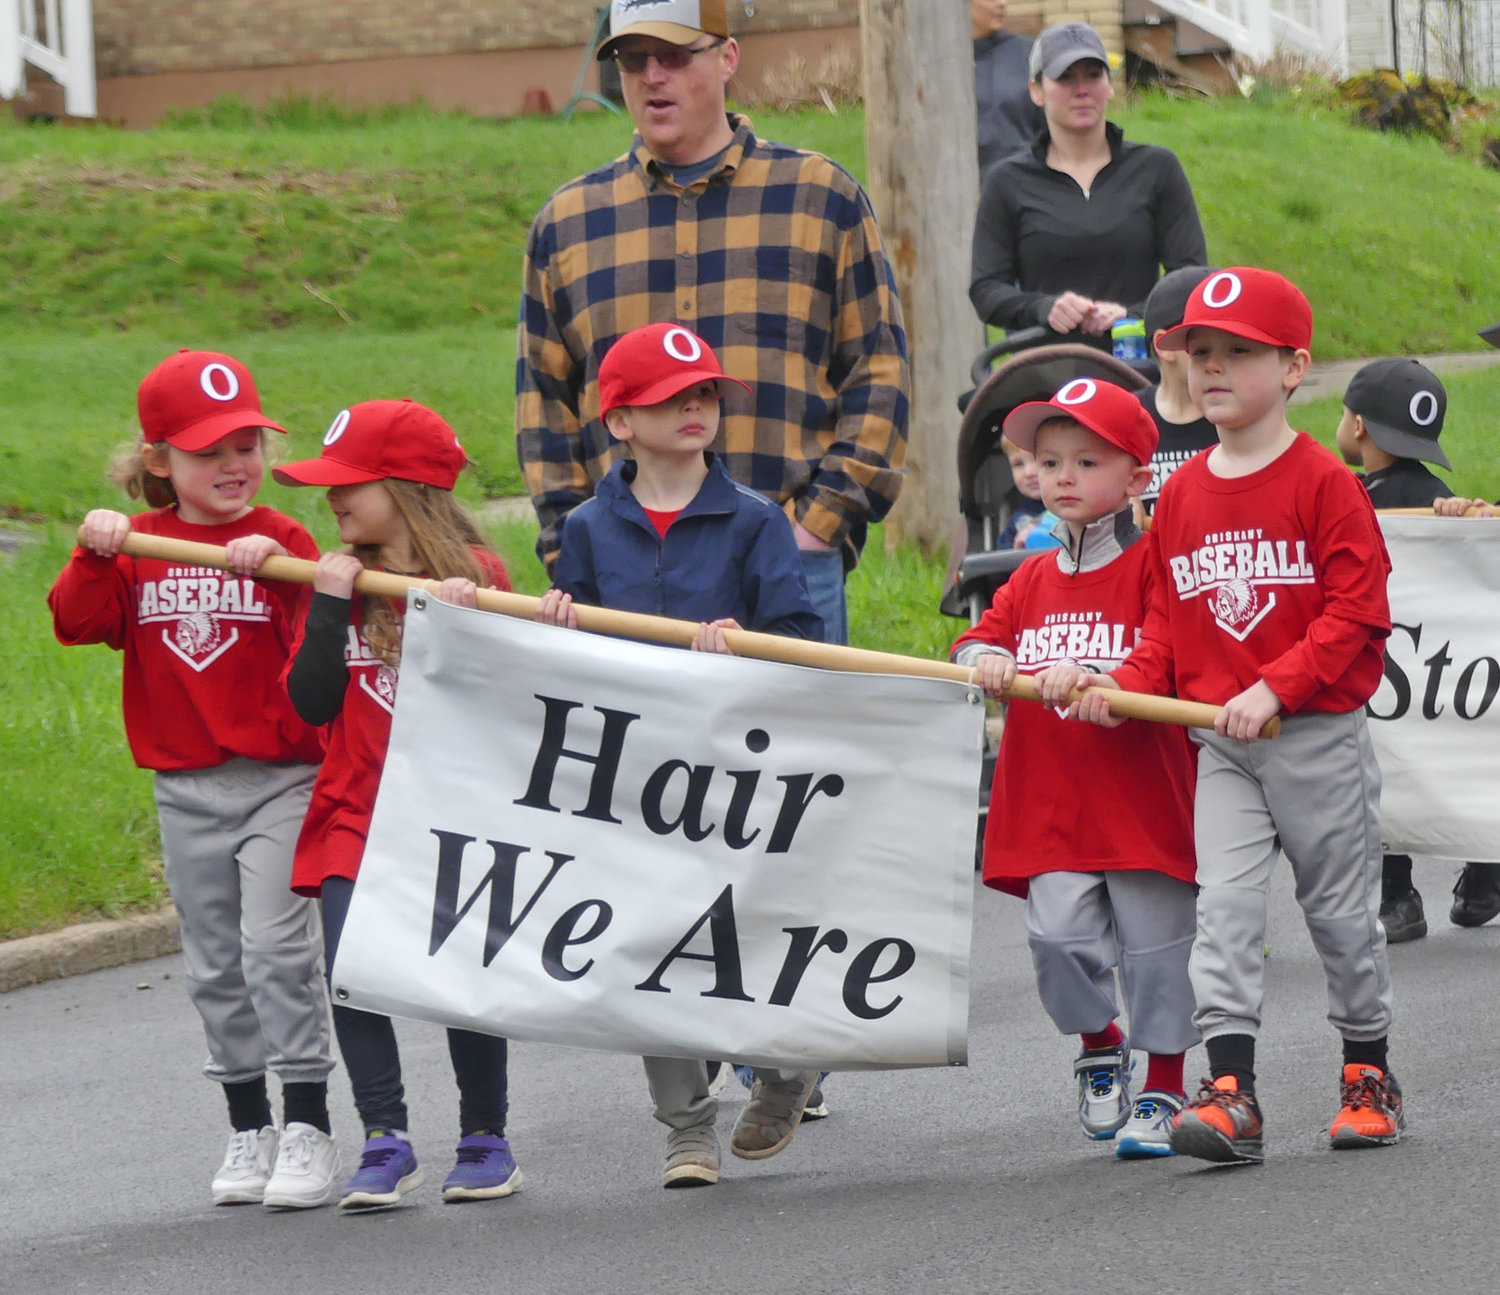 Hair We Are t-ball team marches during opening day ceremony in Oriskany on Utica Street.